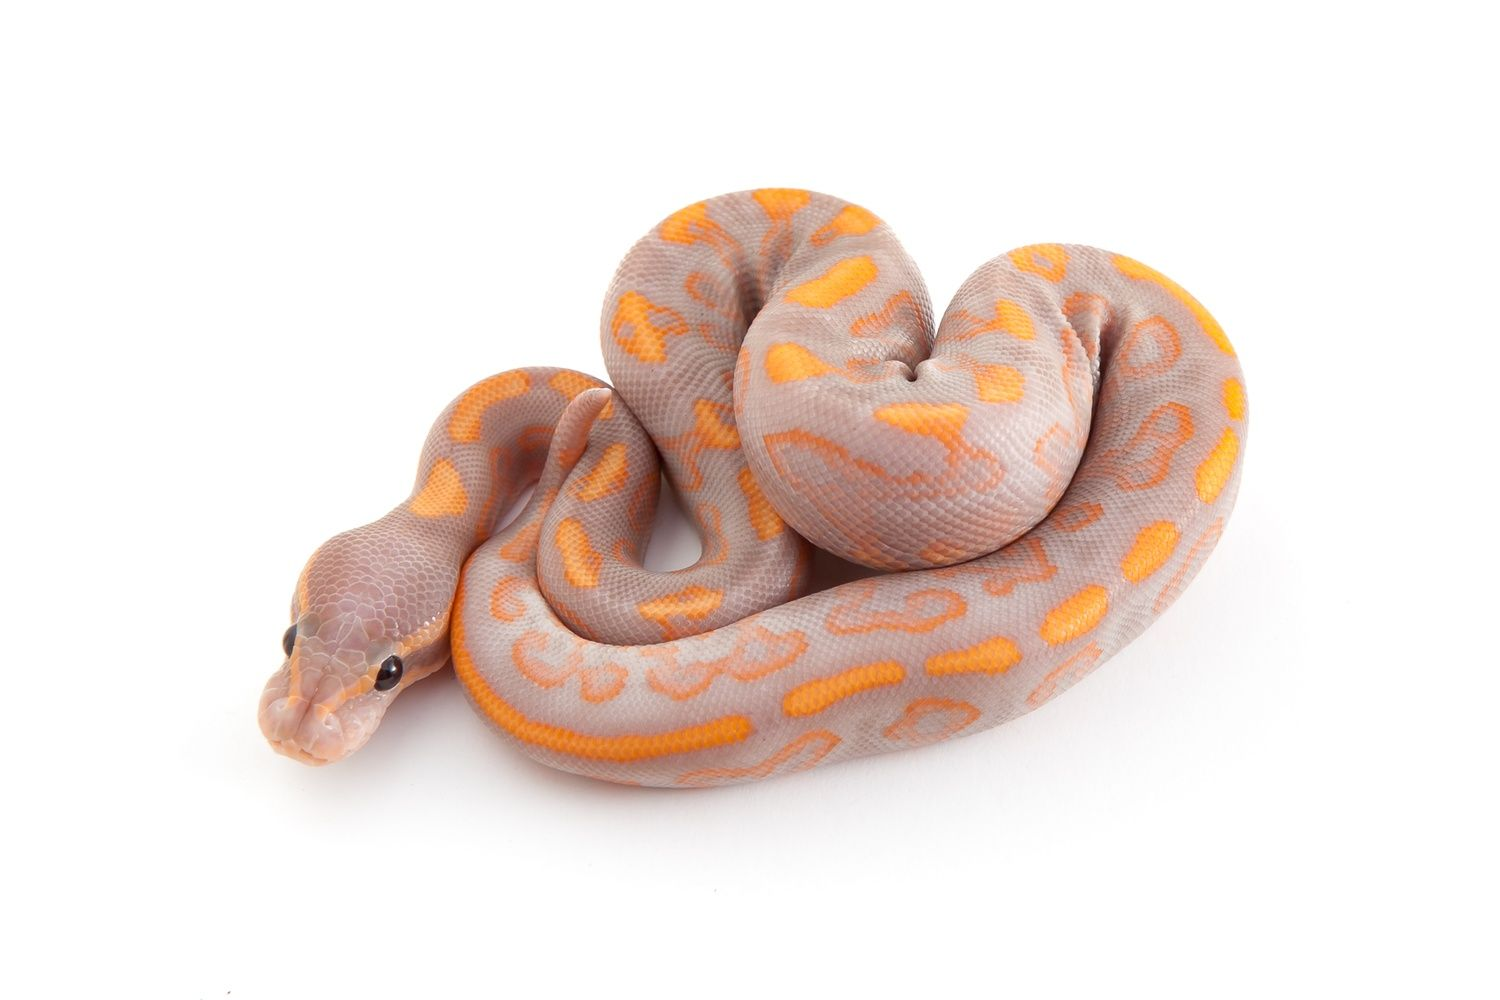 Banana Black Pastel Yellowbelly Ball Python by Outback